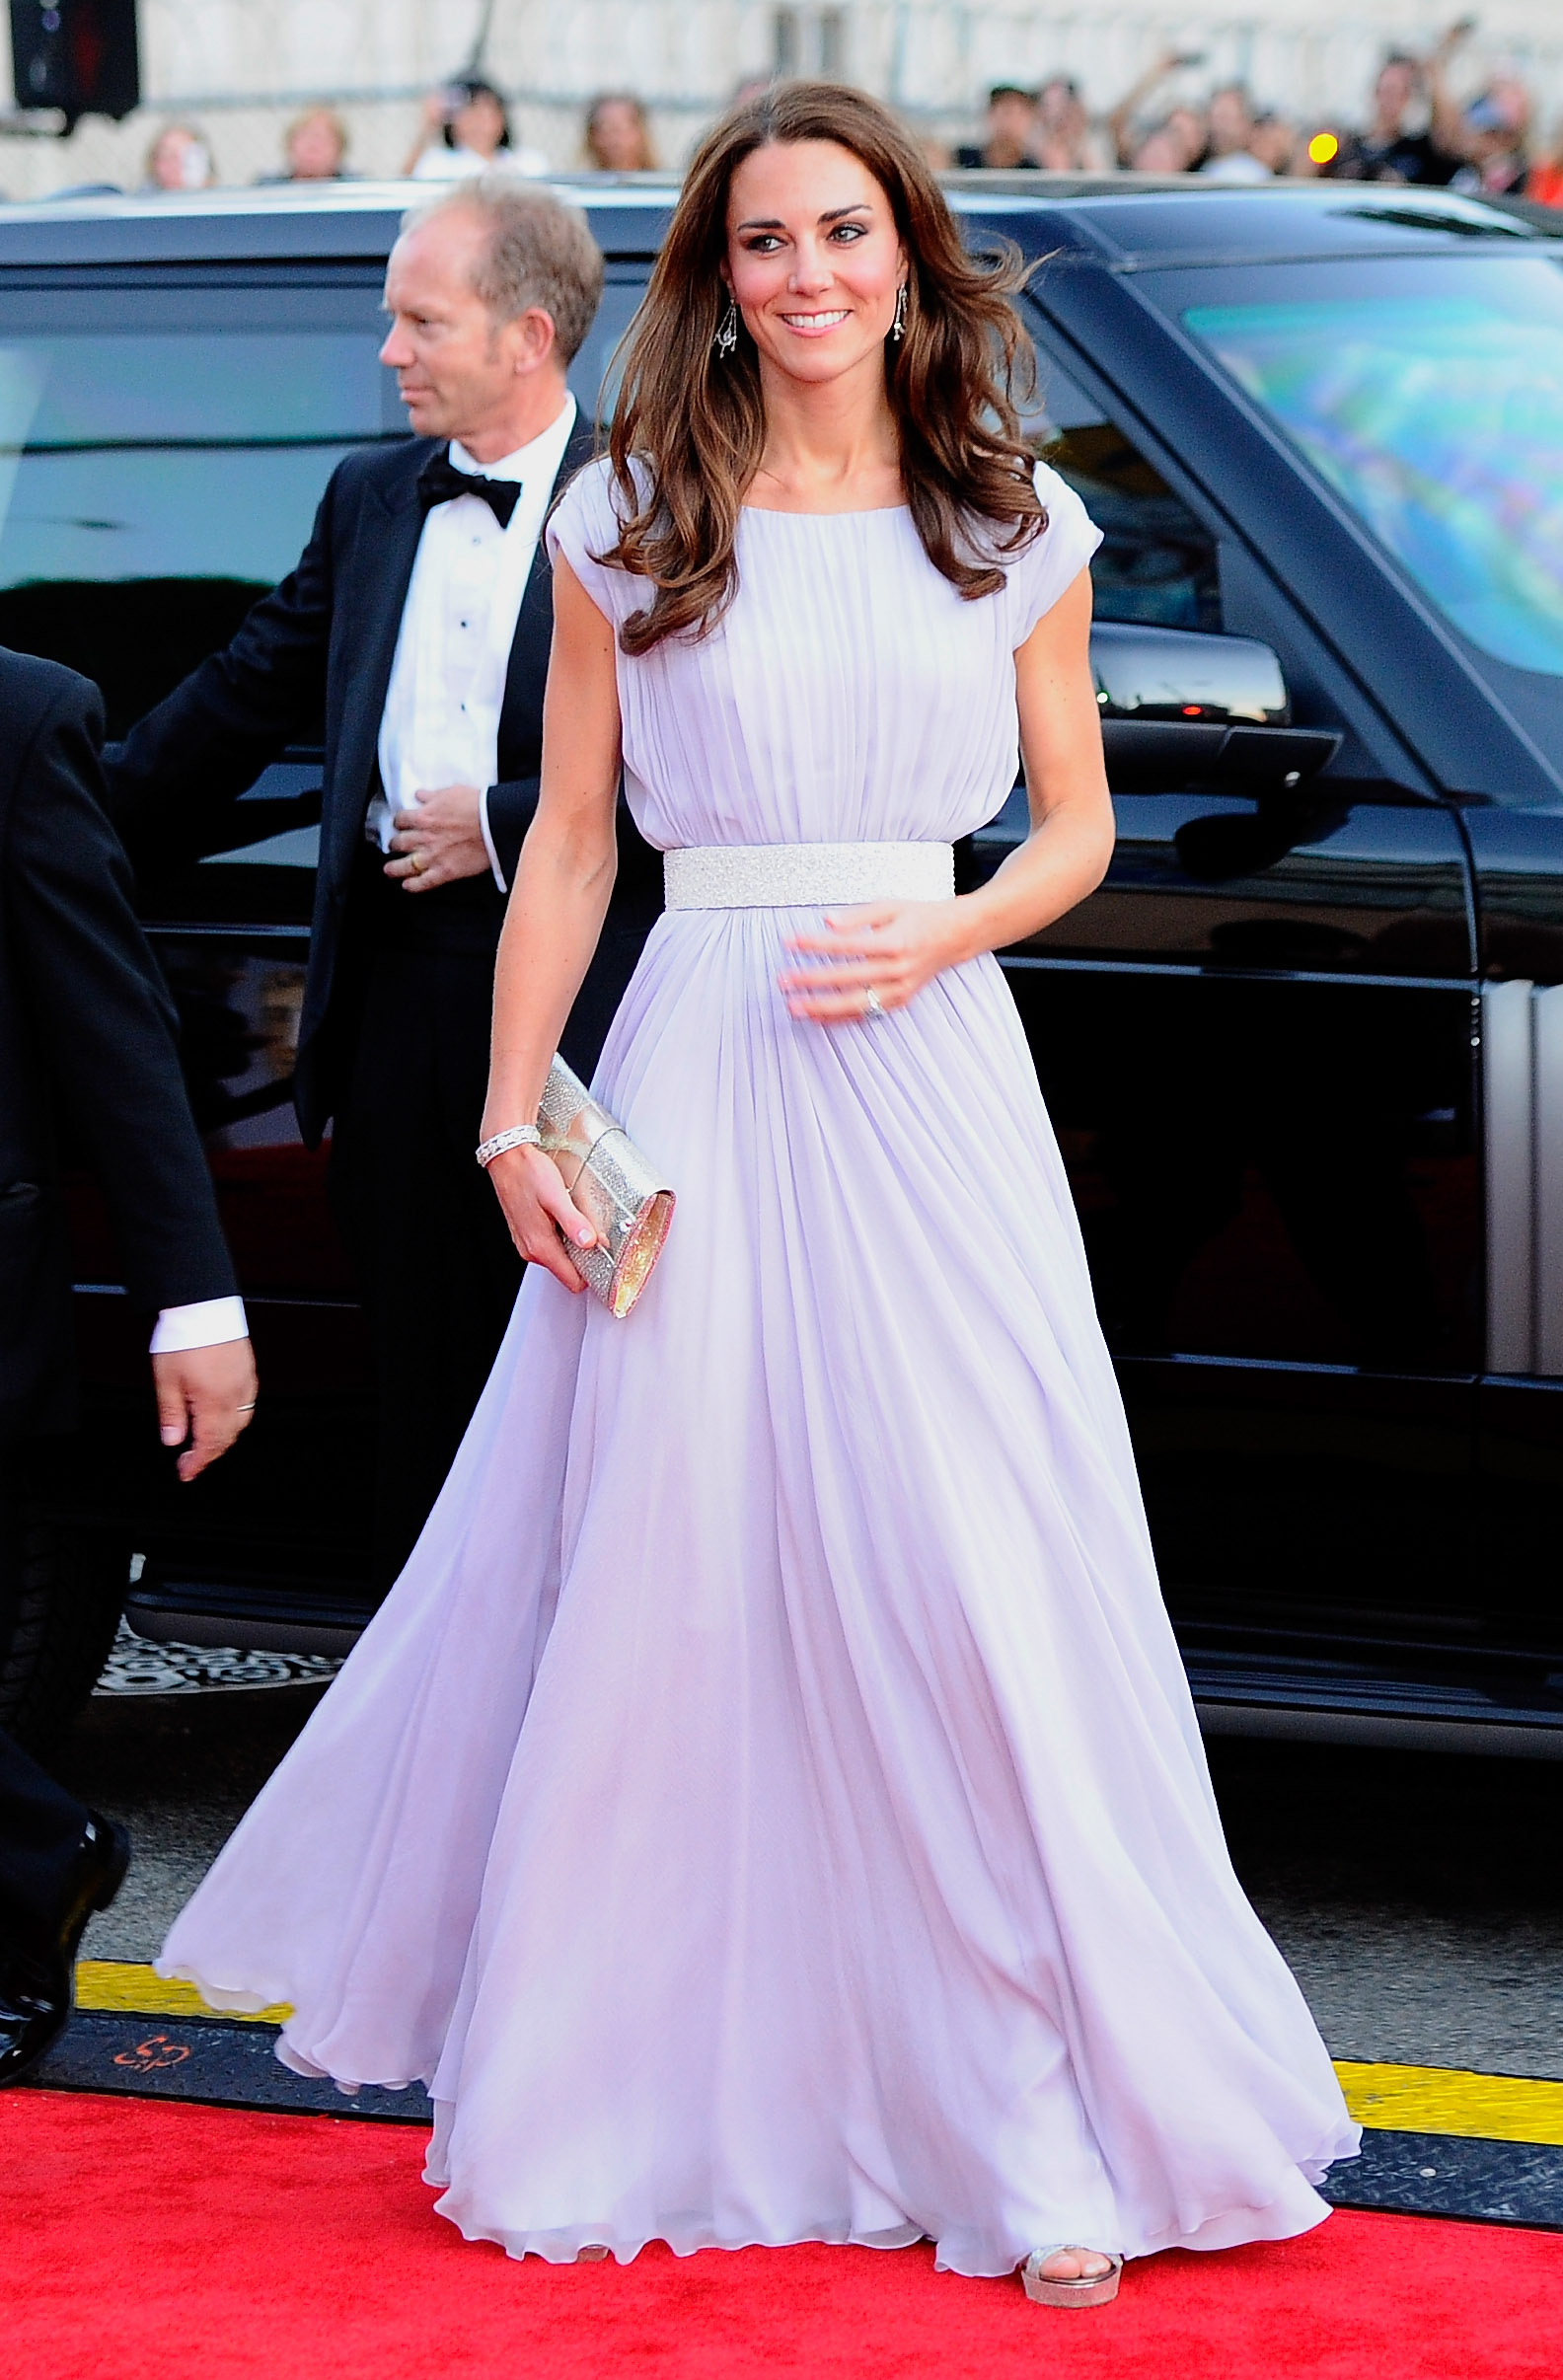 Kate Middleton in Alexander McQueen at BAFTA event in LA.